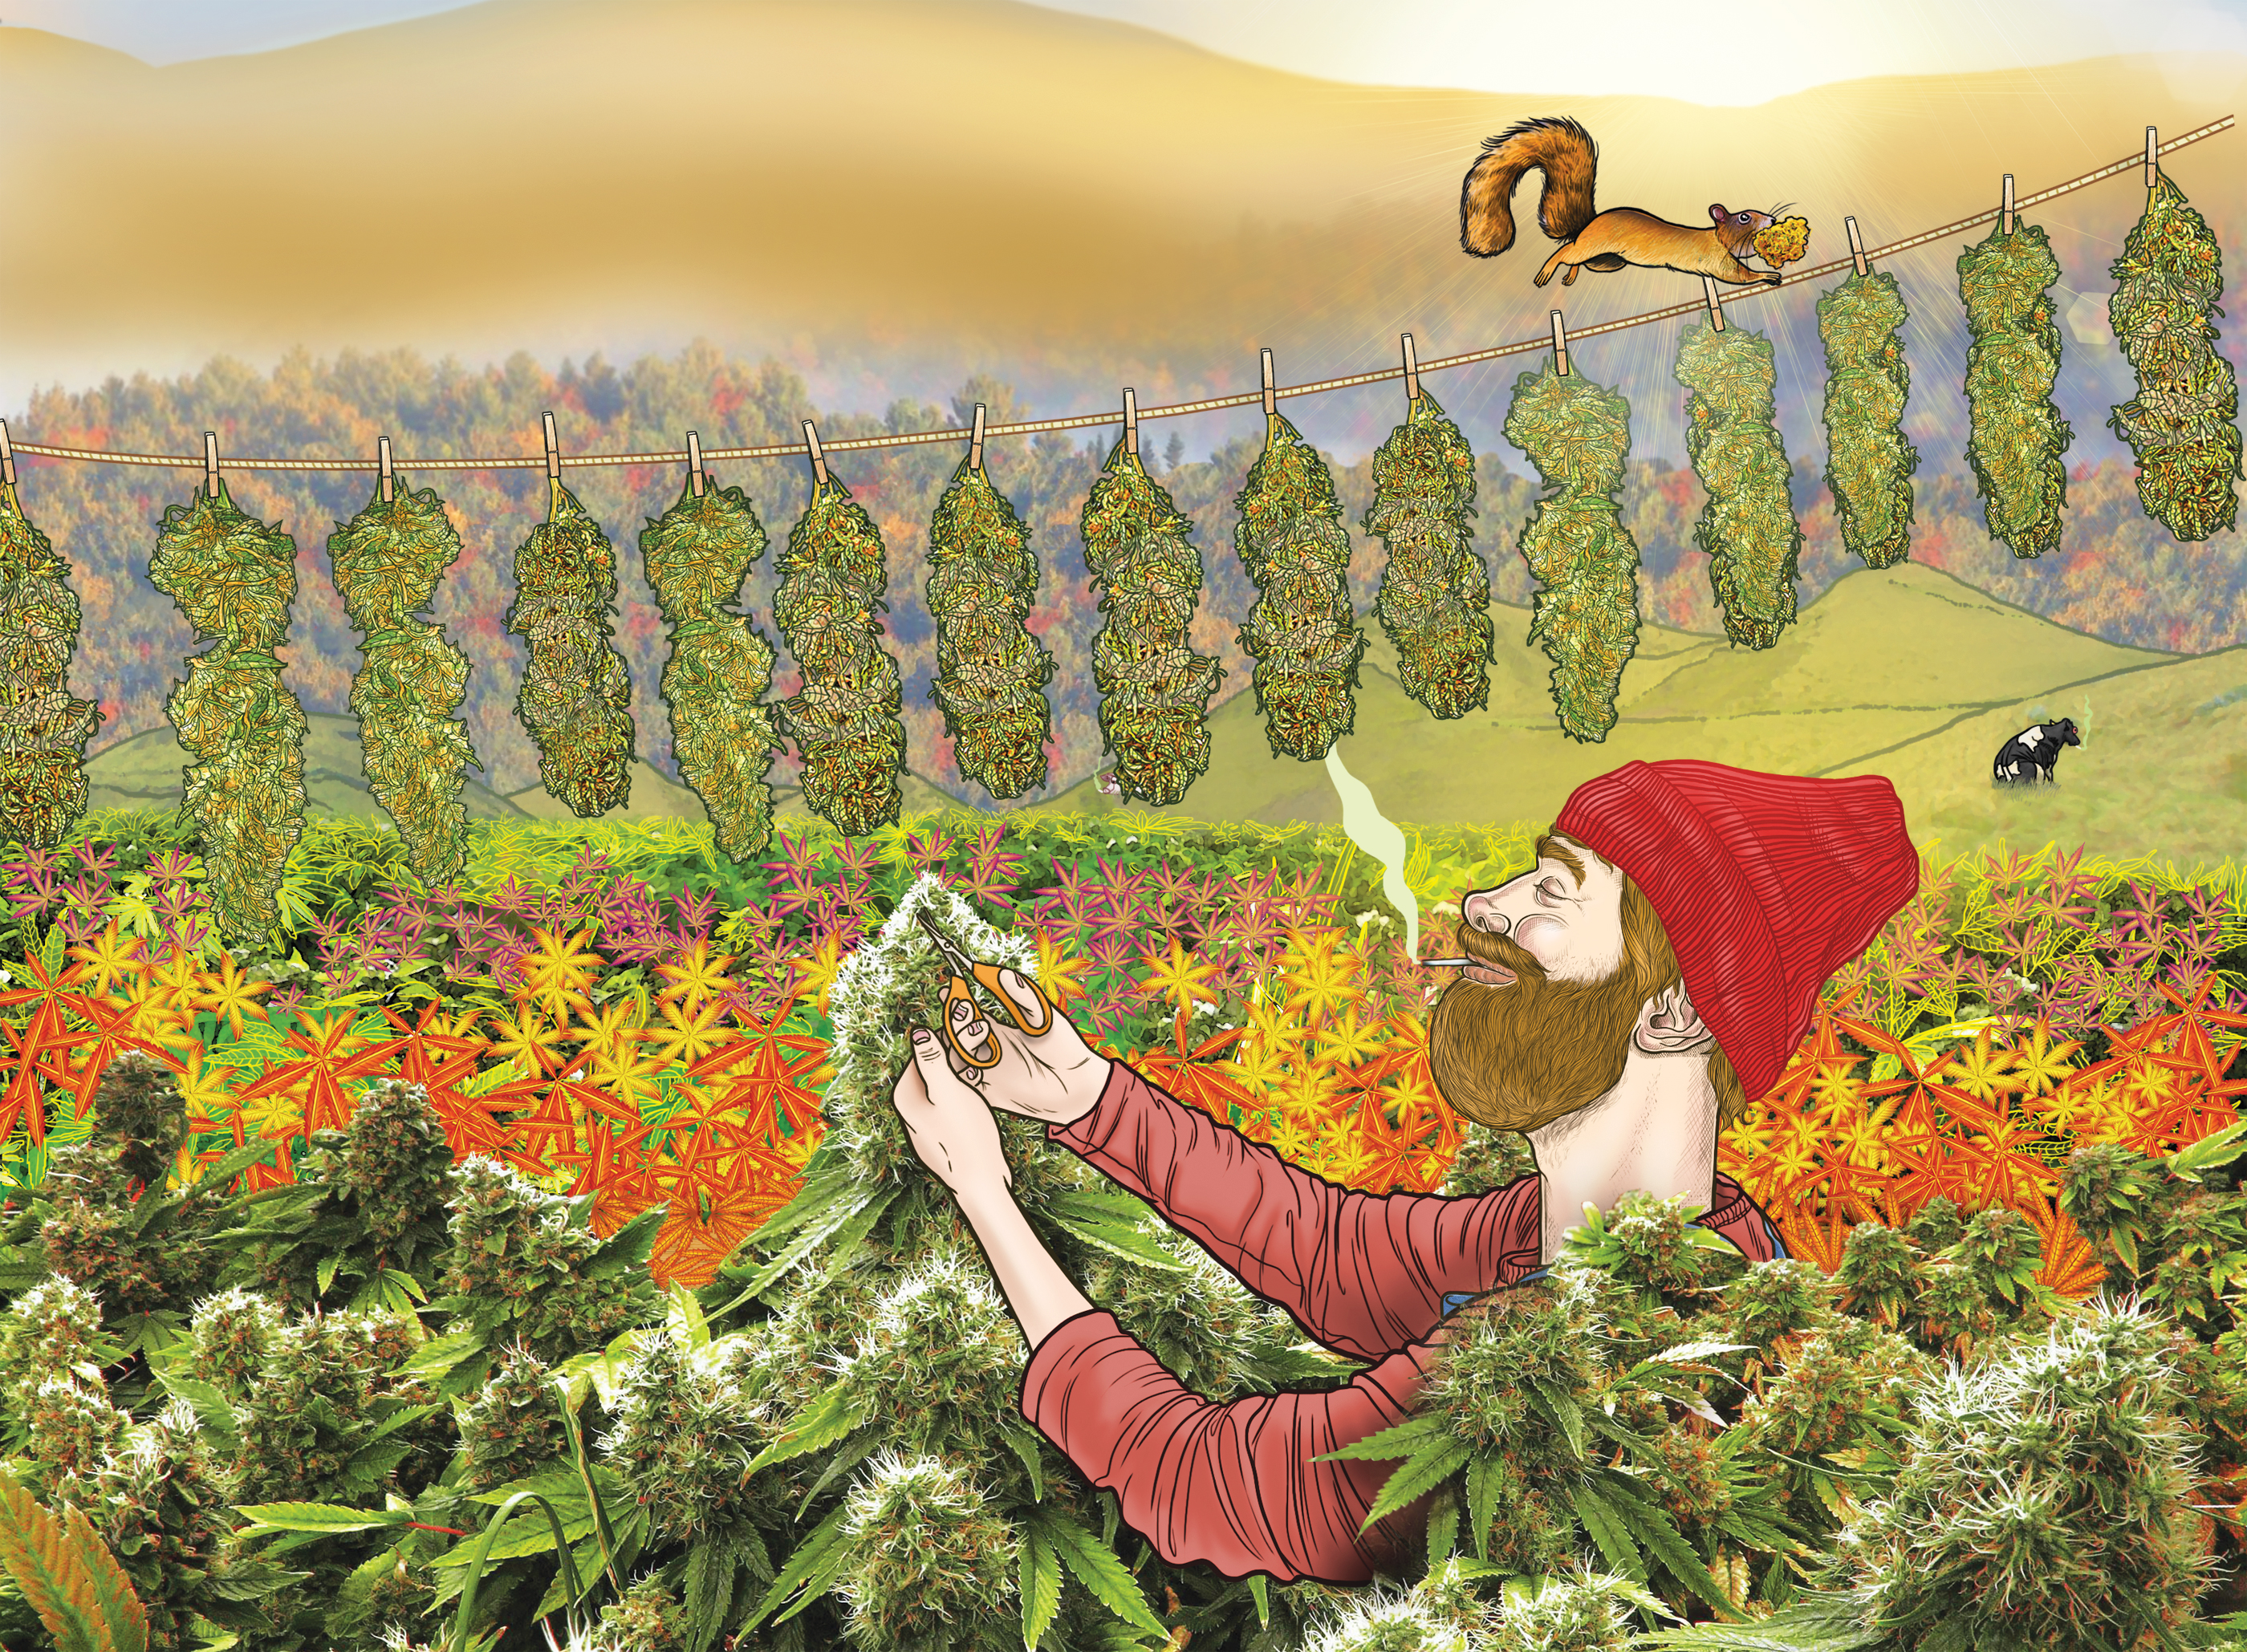 Welcome to the 2016 Harvest Issue